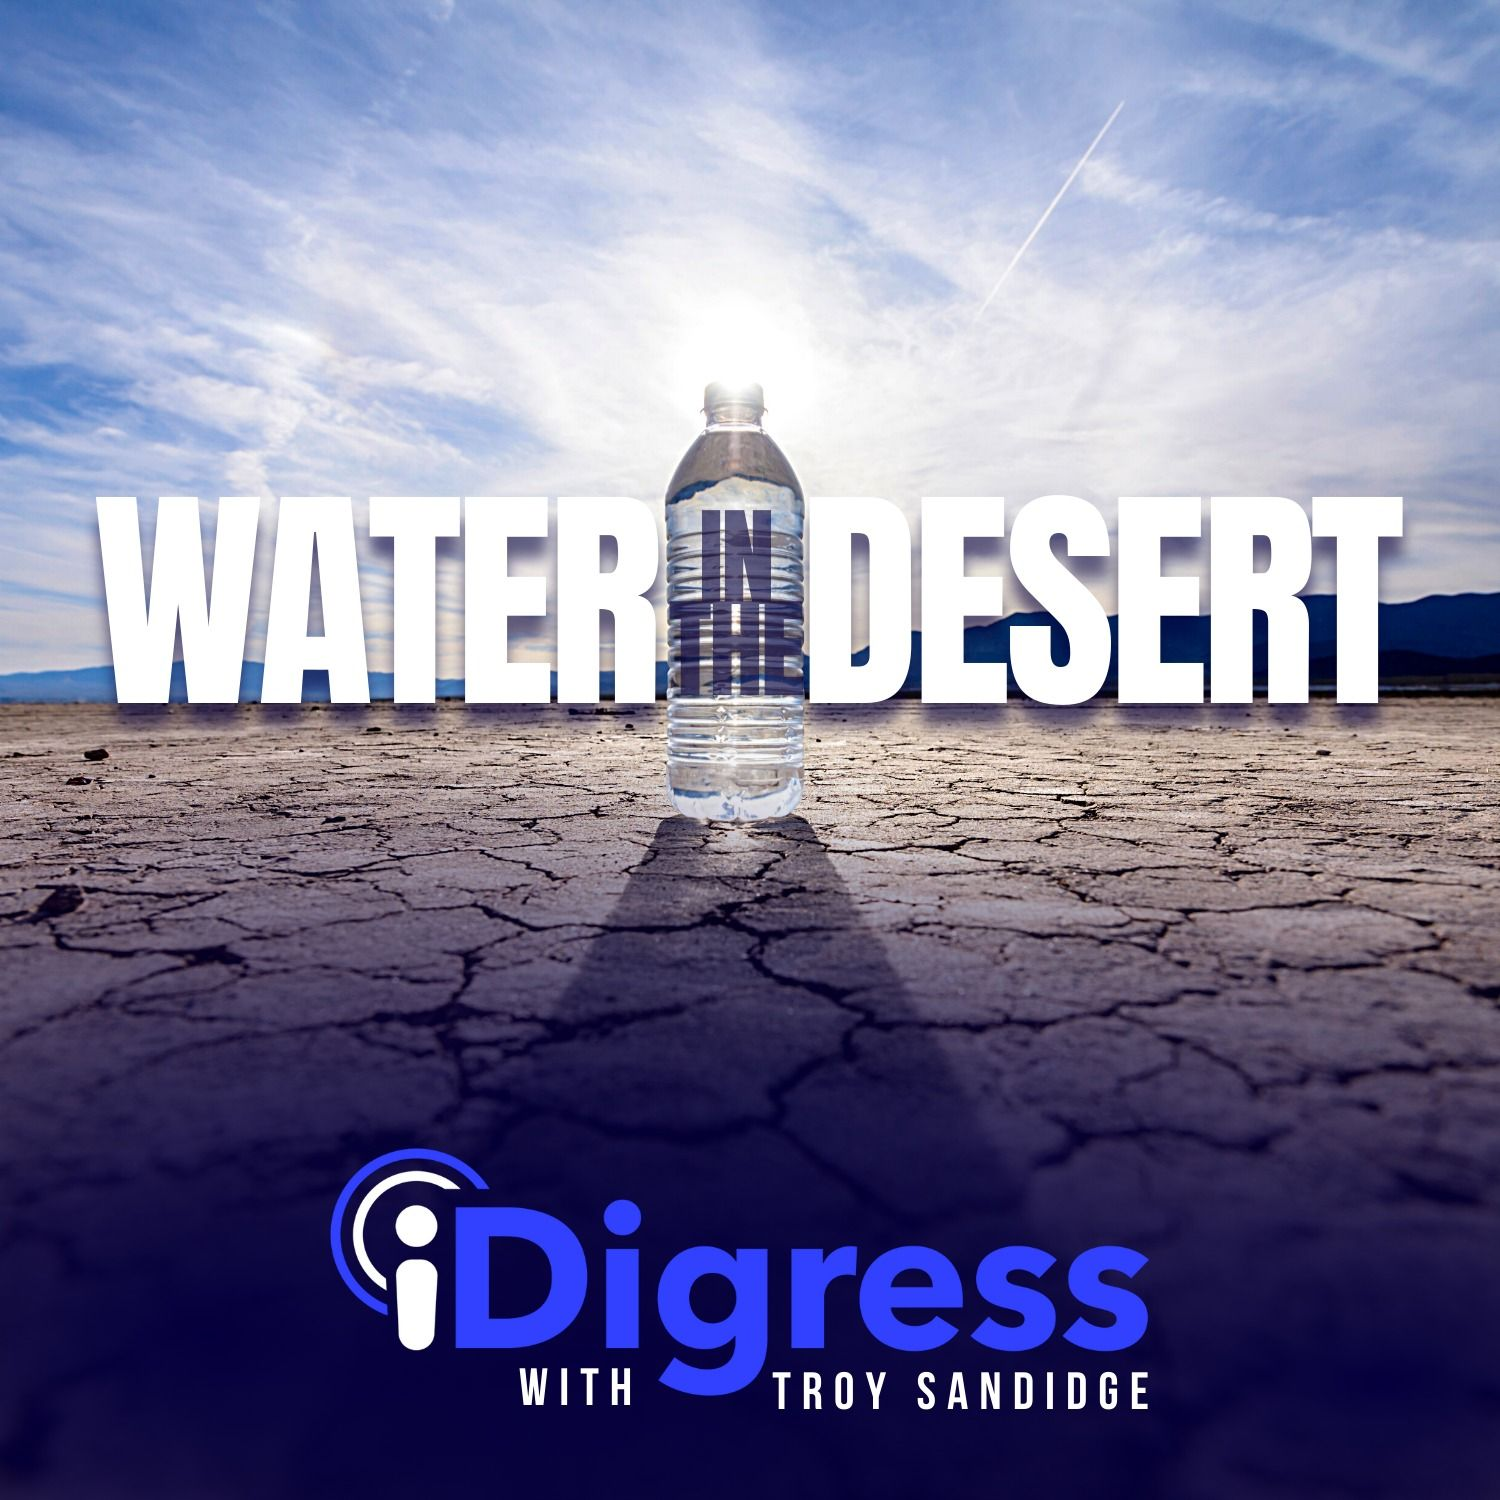 #WaterInTheDesert